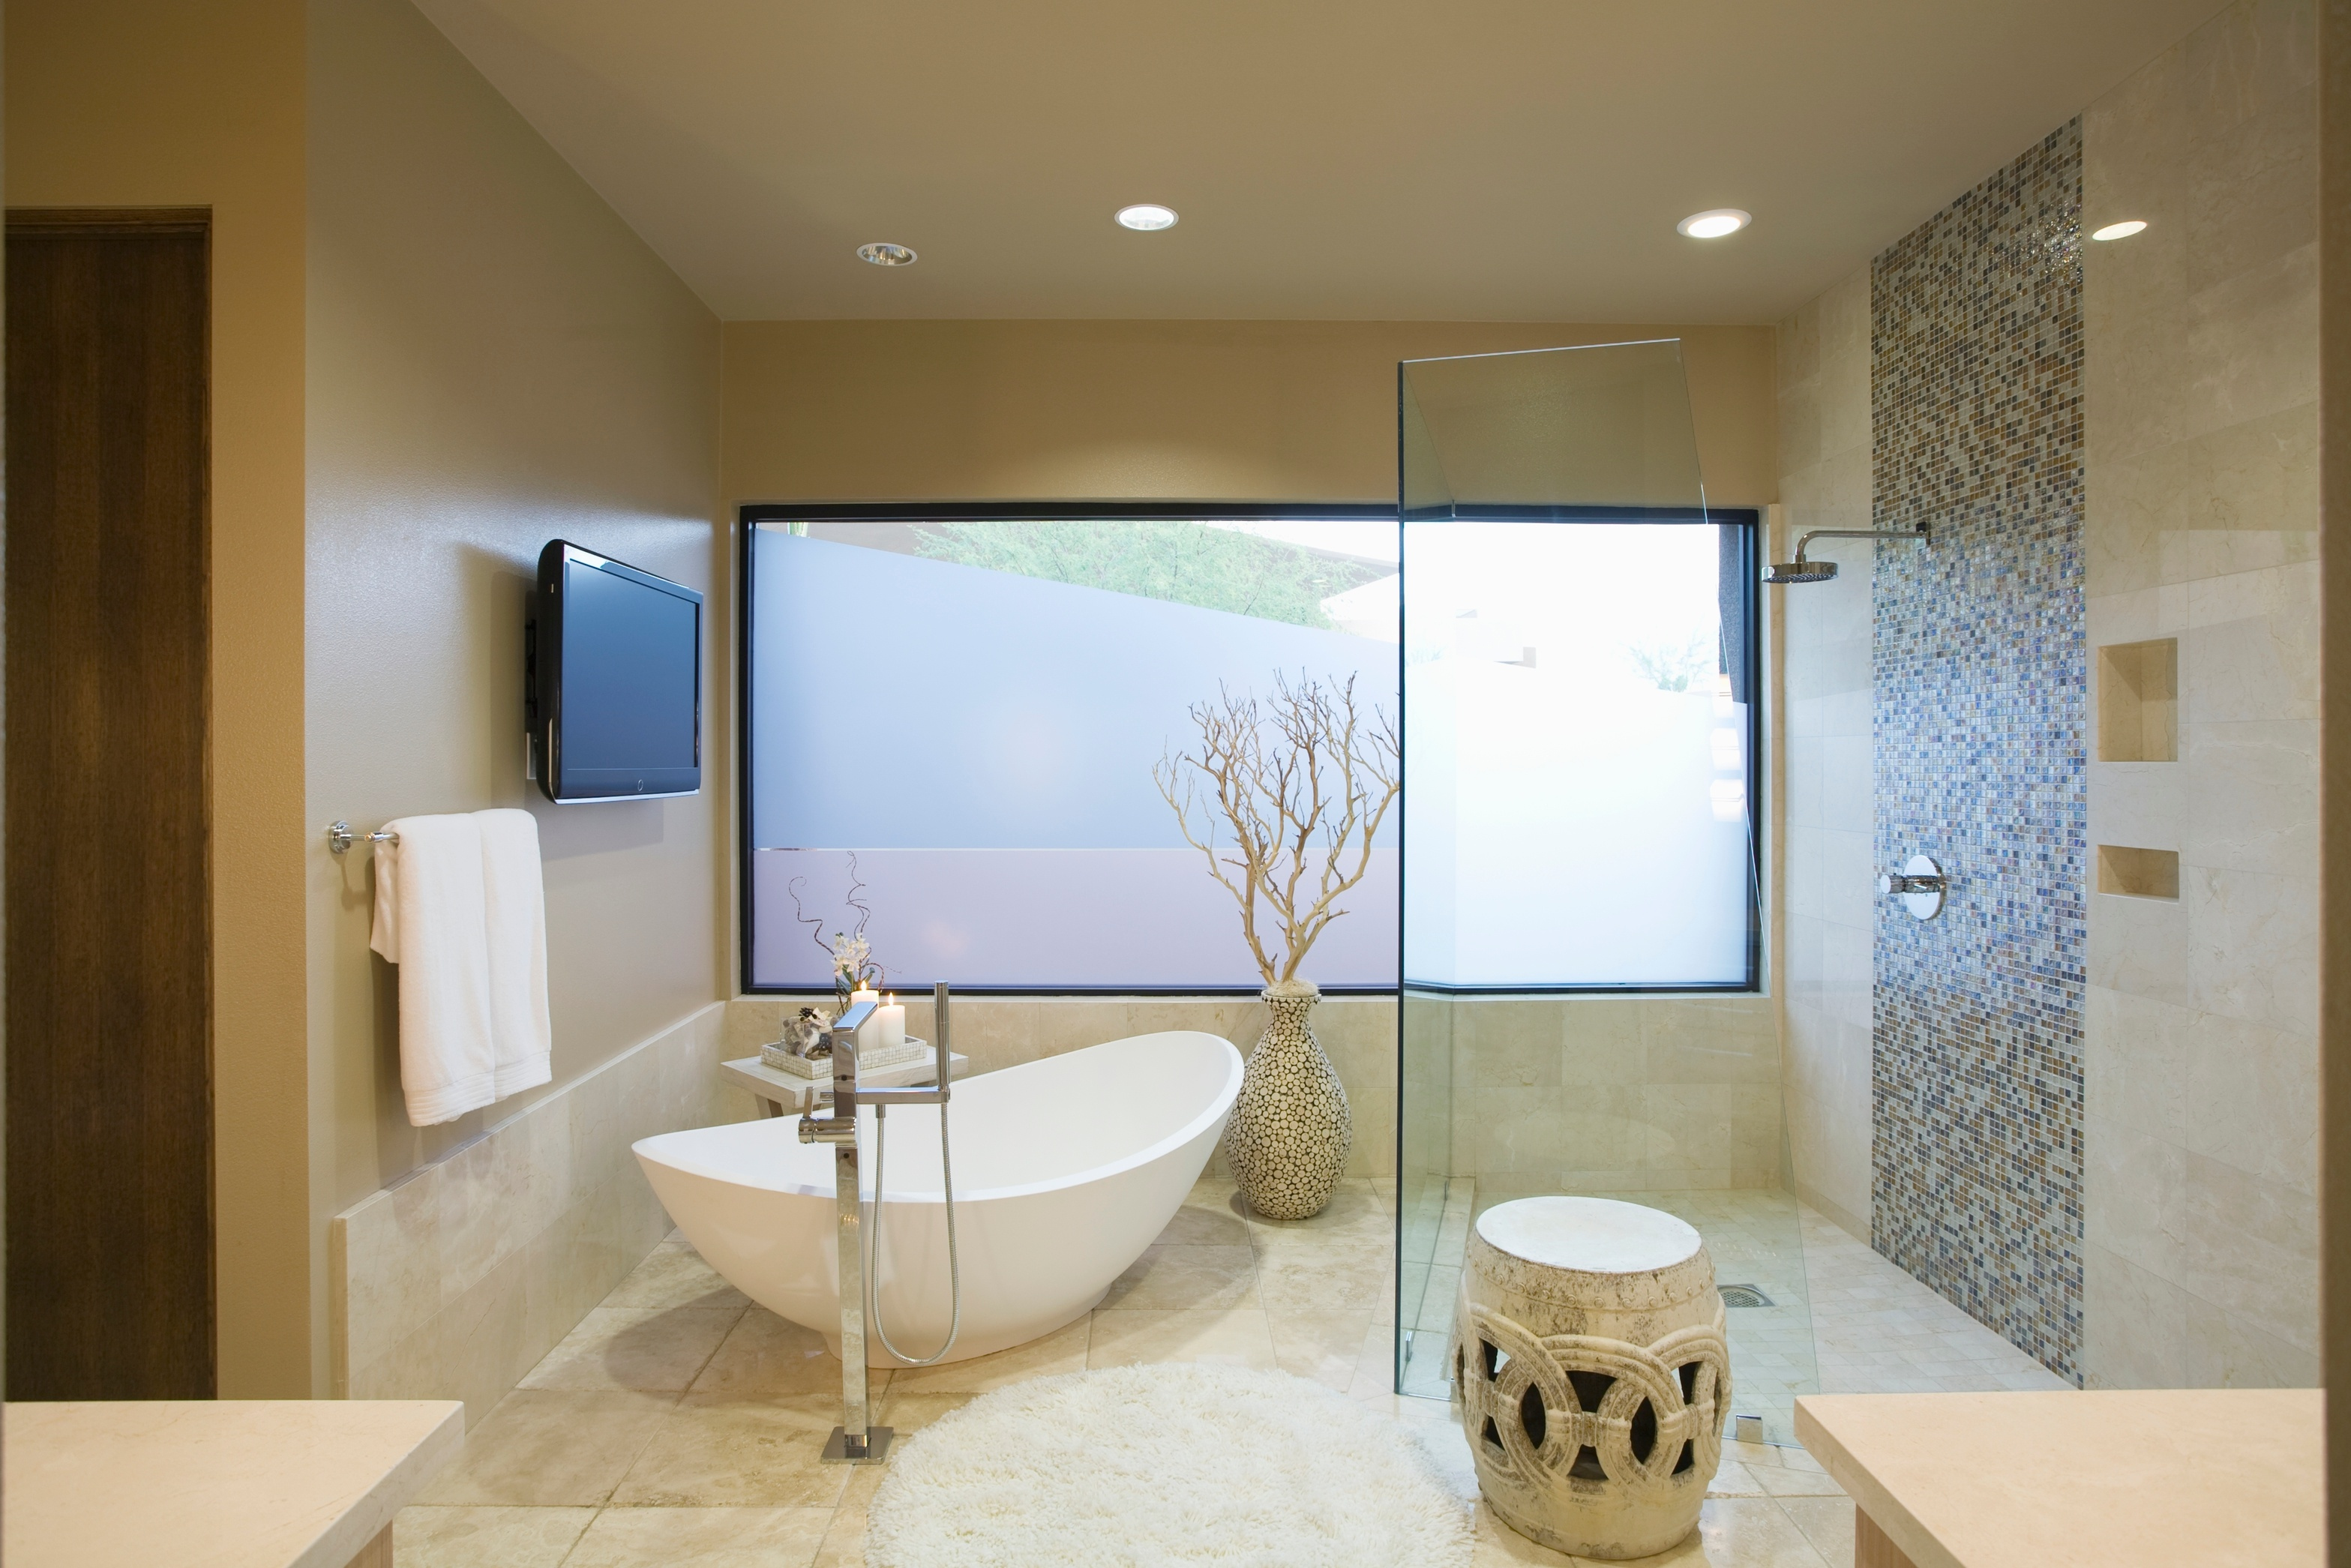 5-Essential-Features-for-Your-Master-Bathroom.jpg